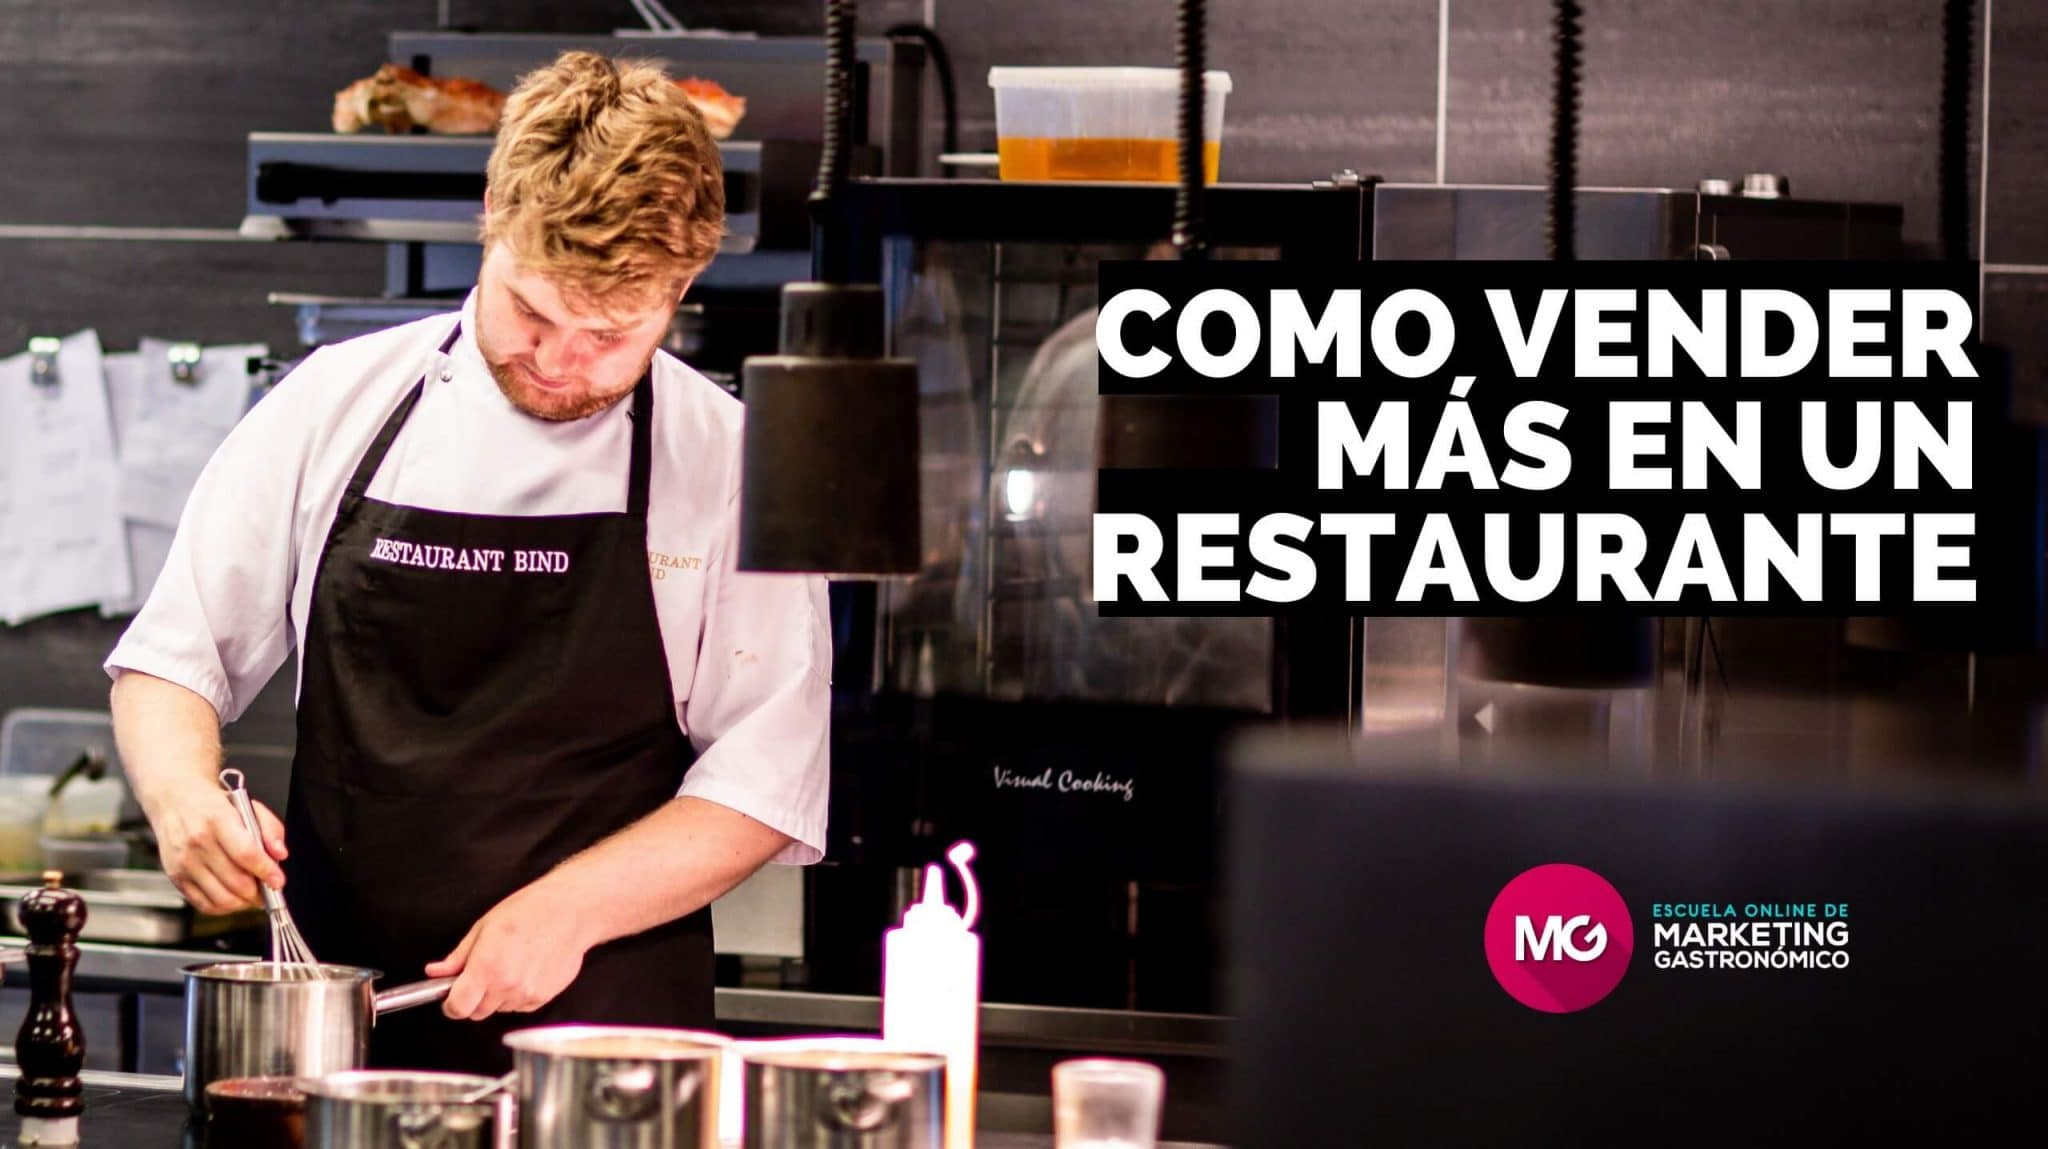 estrategias de marketing para vender más en un restaurante